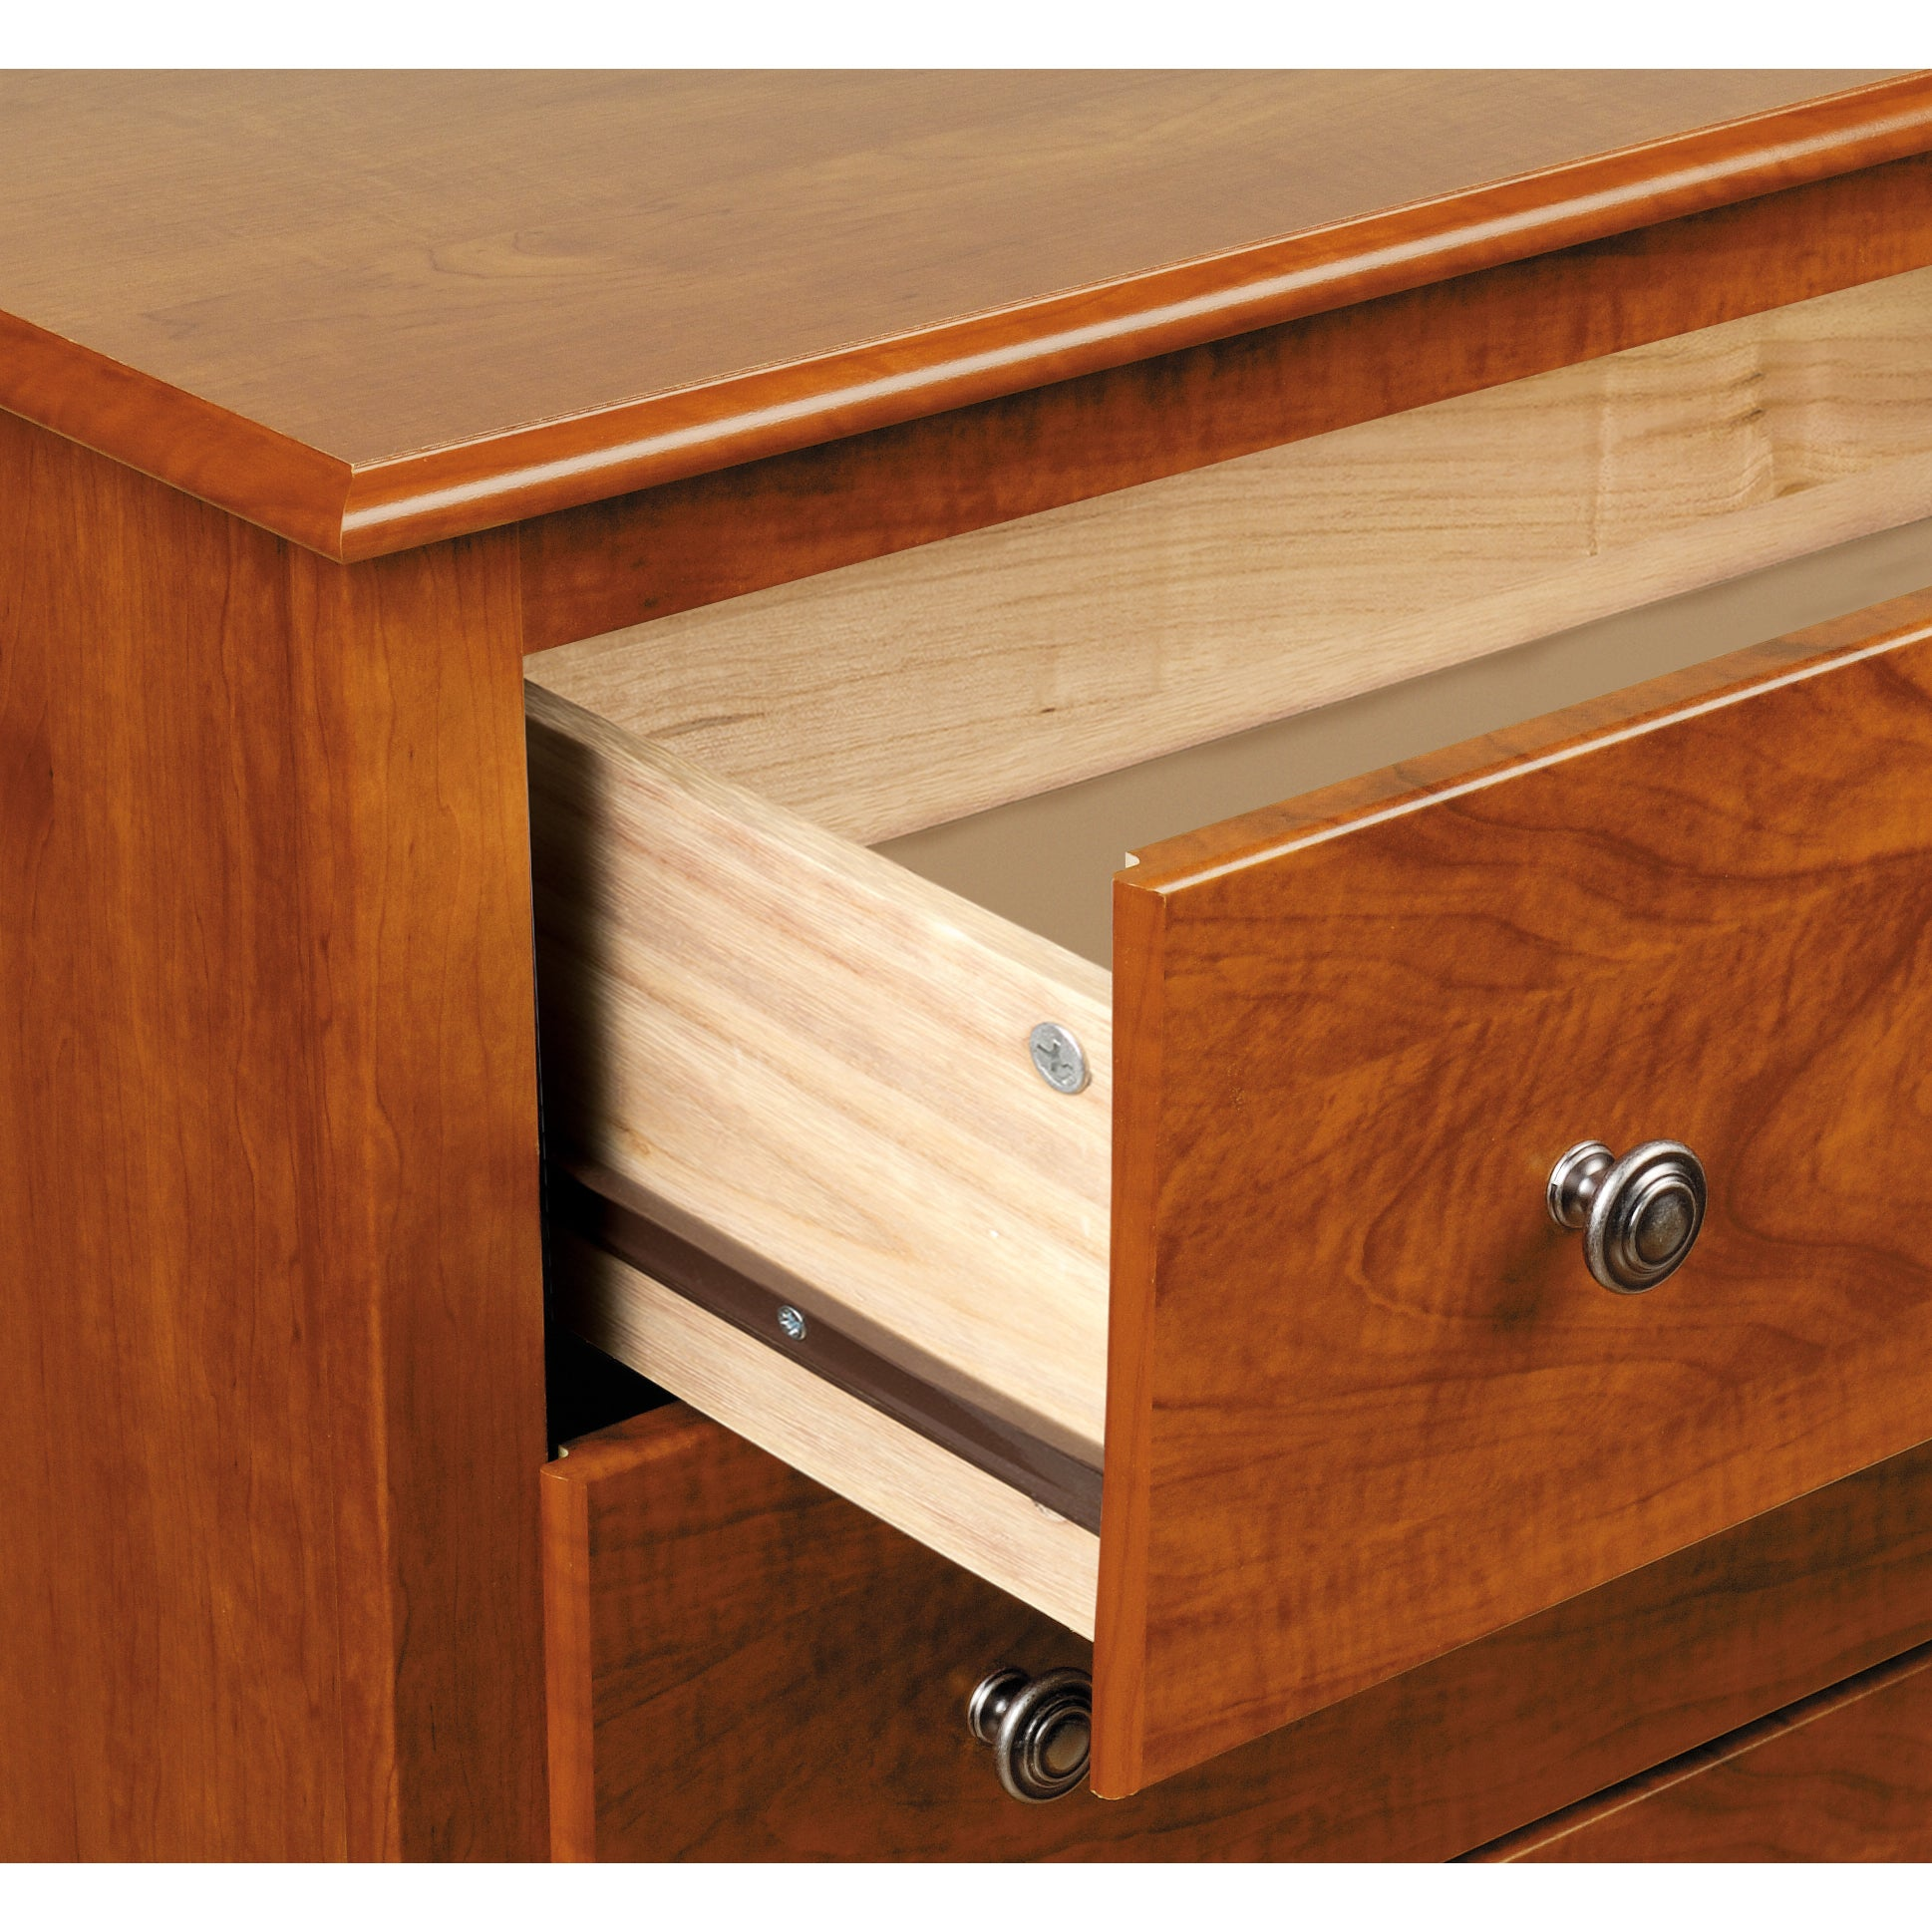 drawers trim products english designs chest furniture with napa item dovetail x riviera width six lingerie threshold height drawer